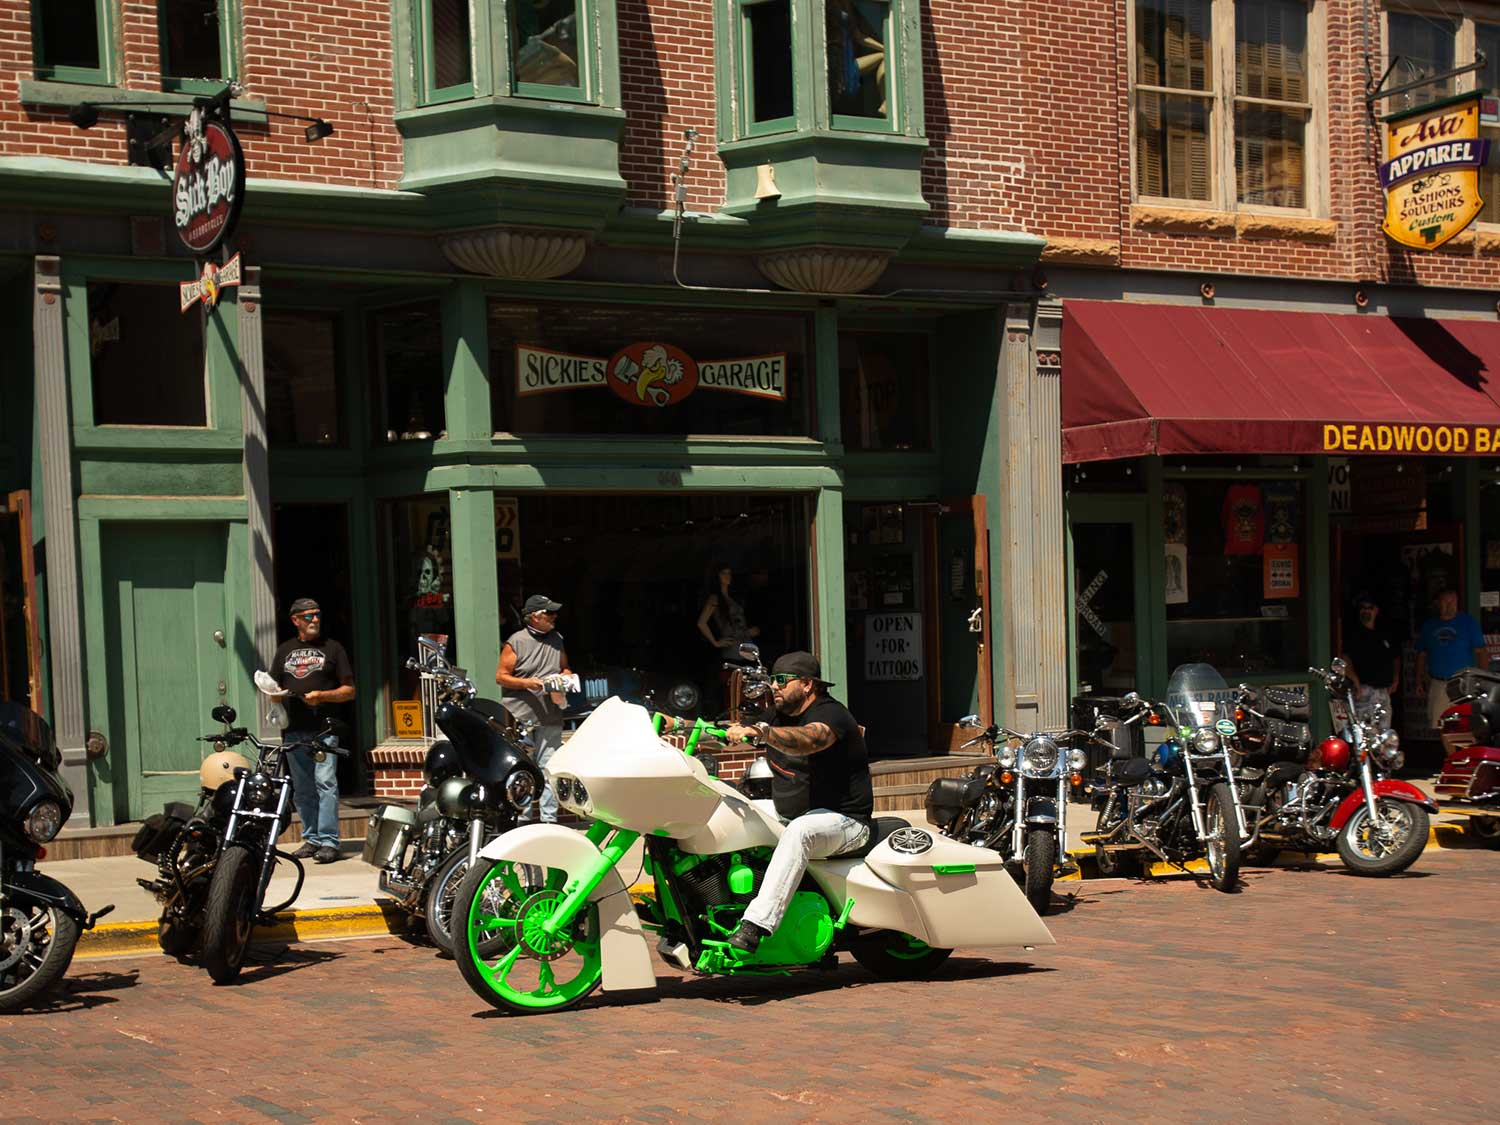 Bright white custom motorcycle with neon green accents